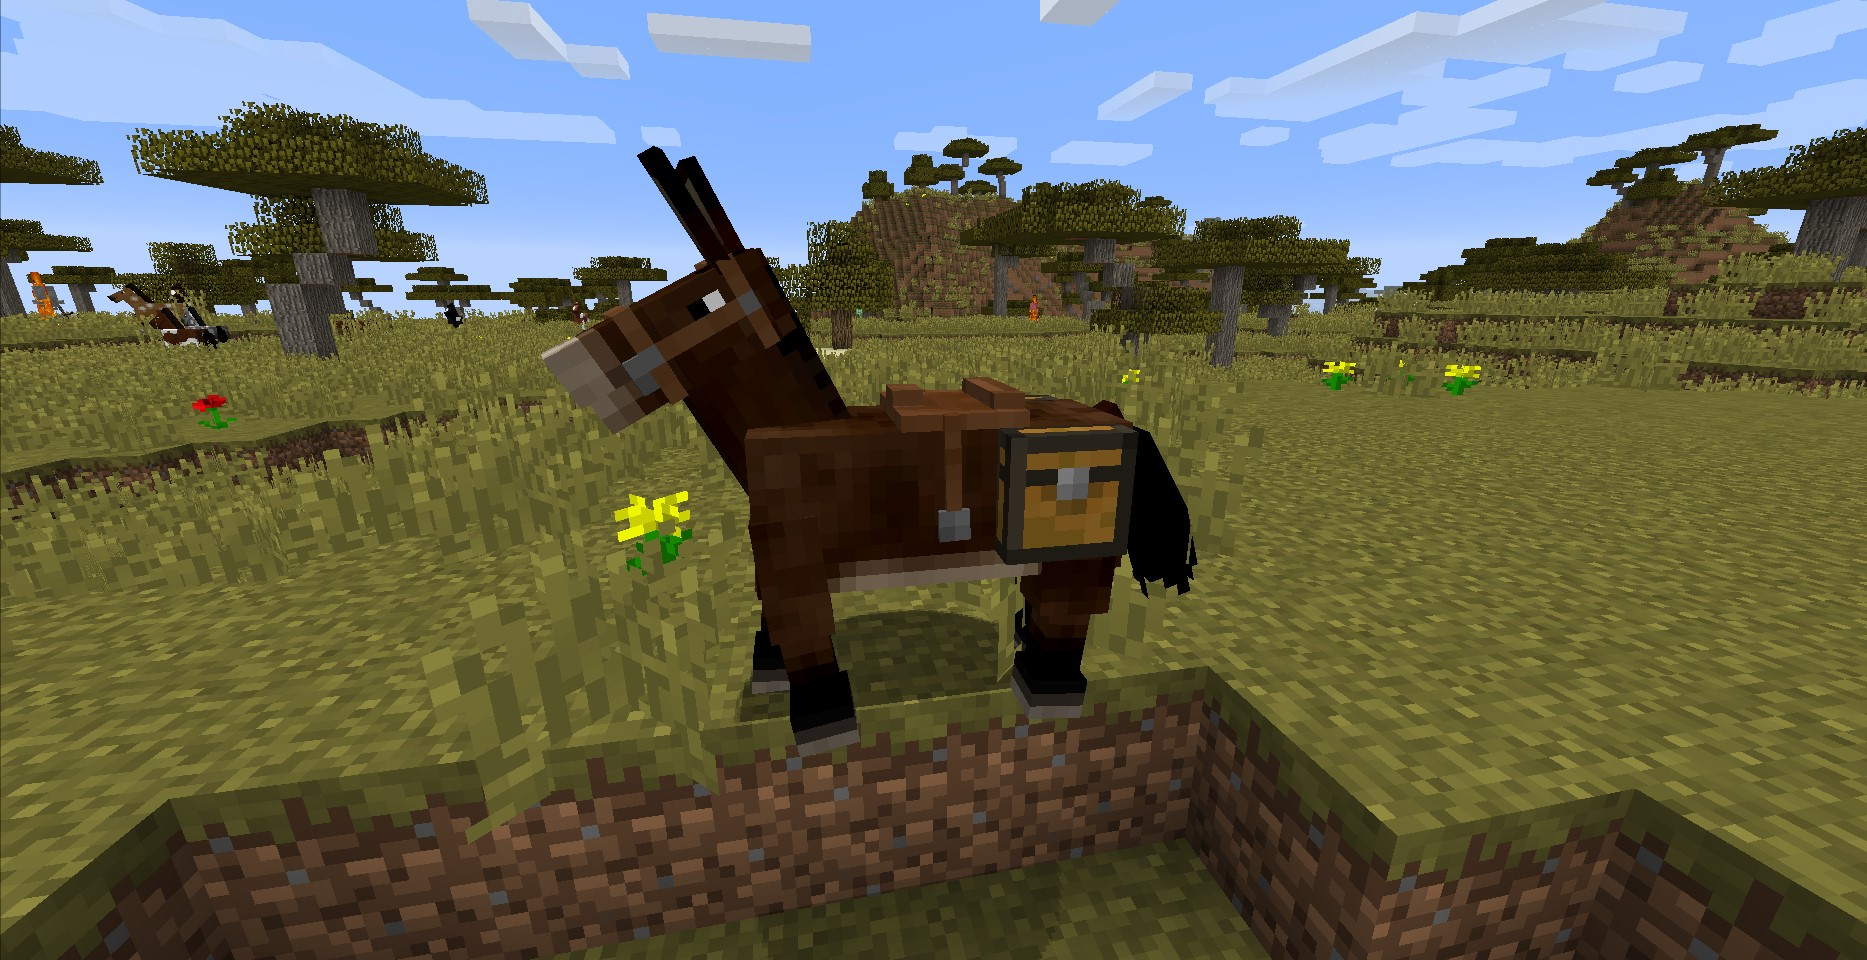 Top 10 Minecraft Best Horse - Download Top 10 Minecraft Best Horse for FREE - Free Cheats for Games